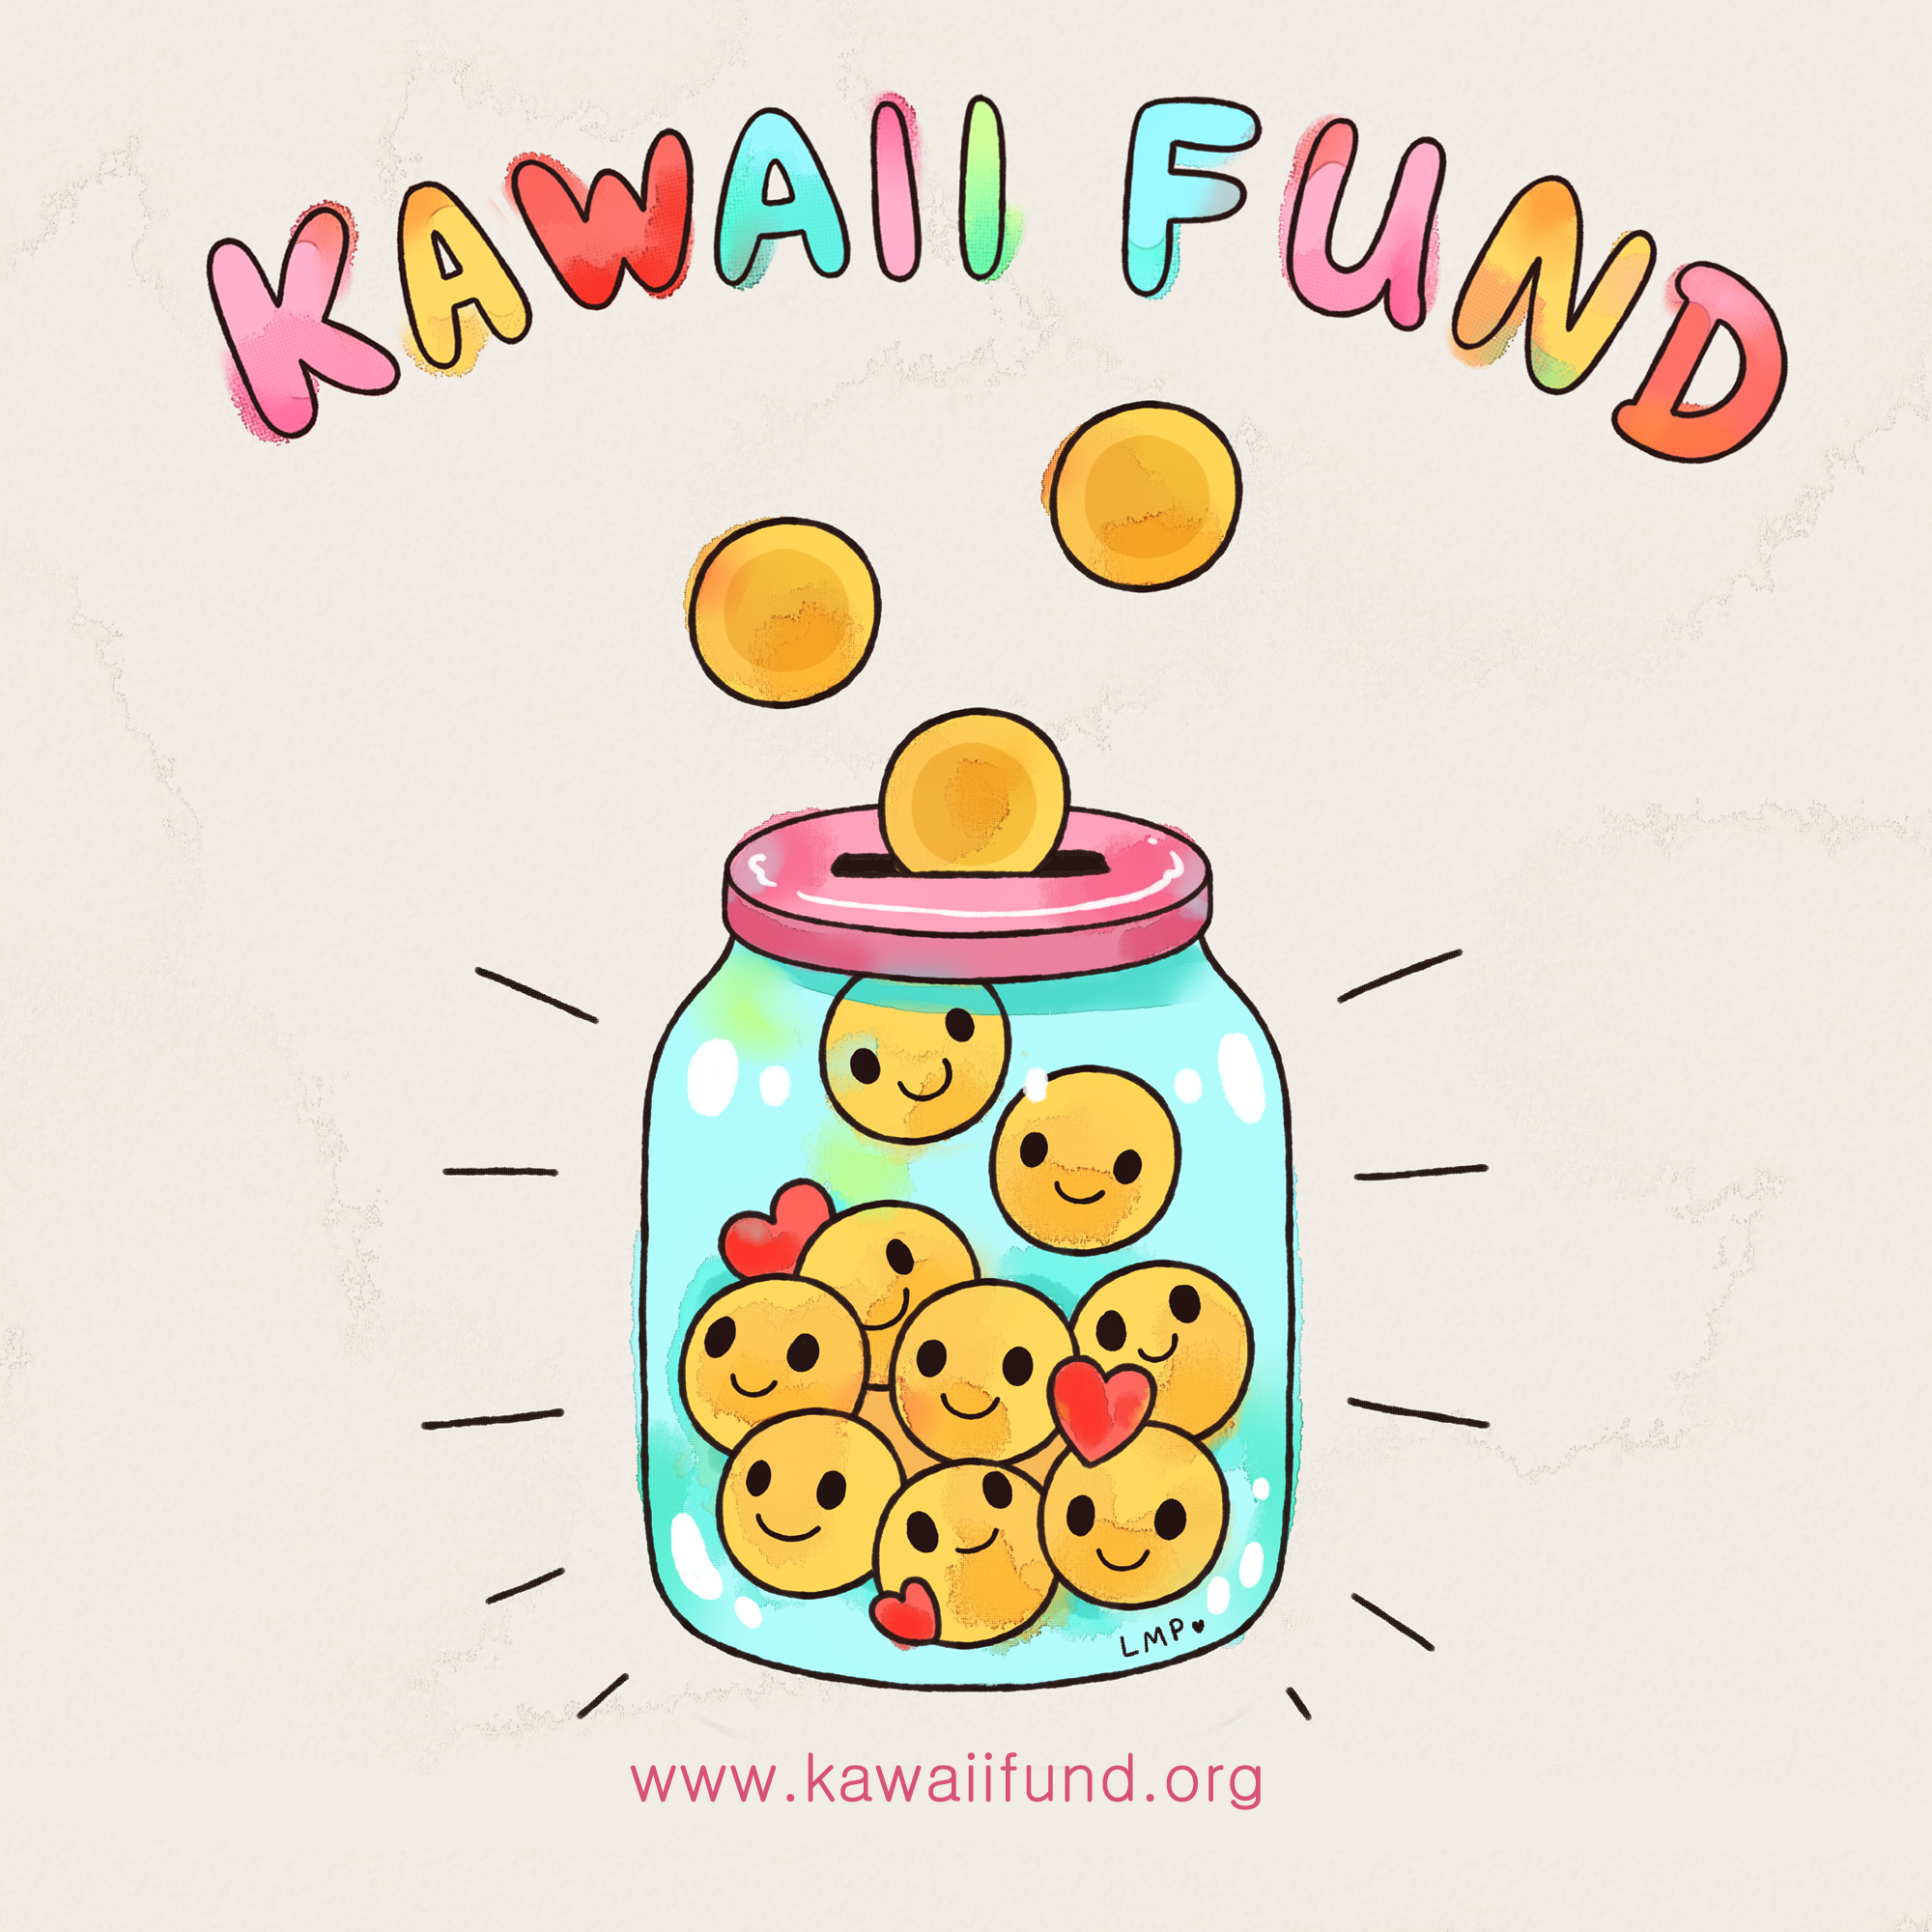 kawaii-fund-3